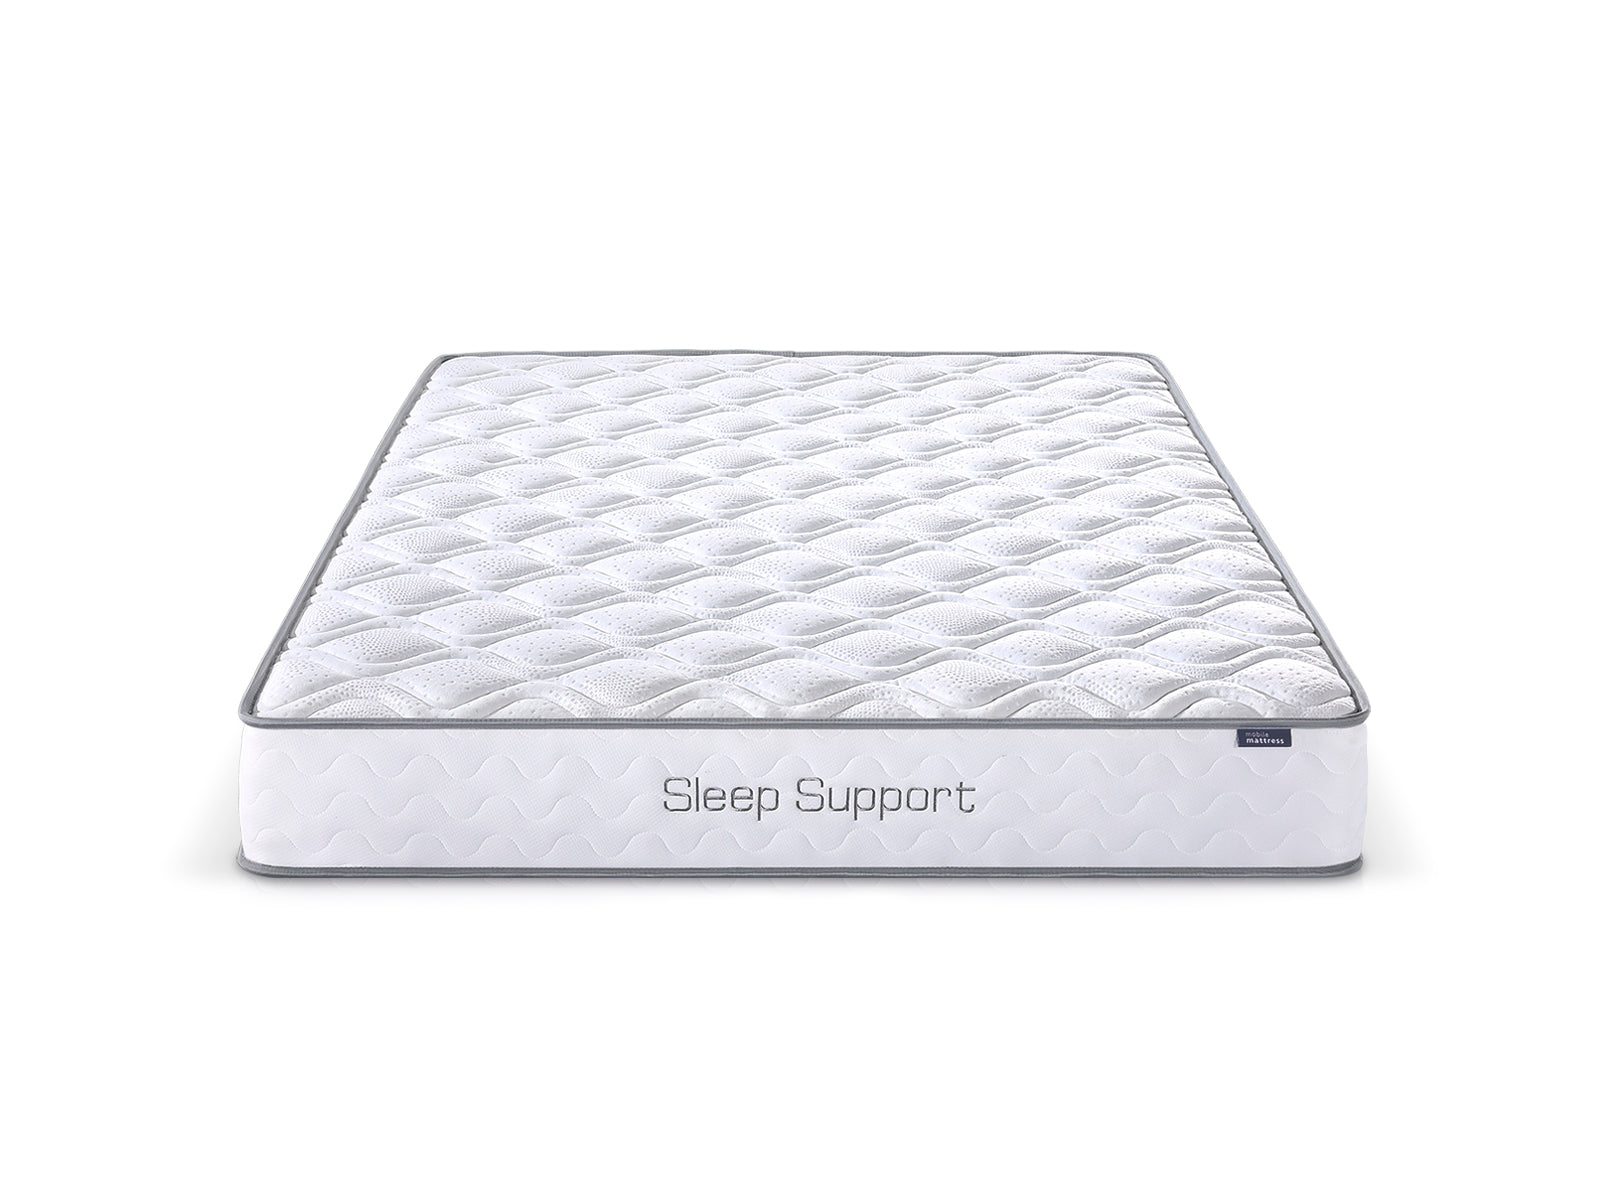 Sleep Support